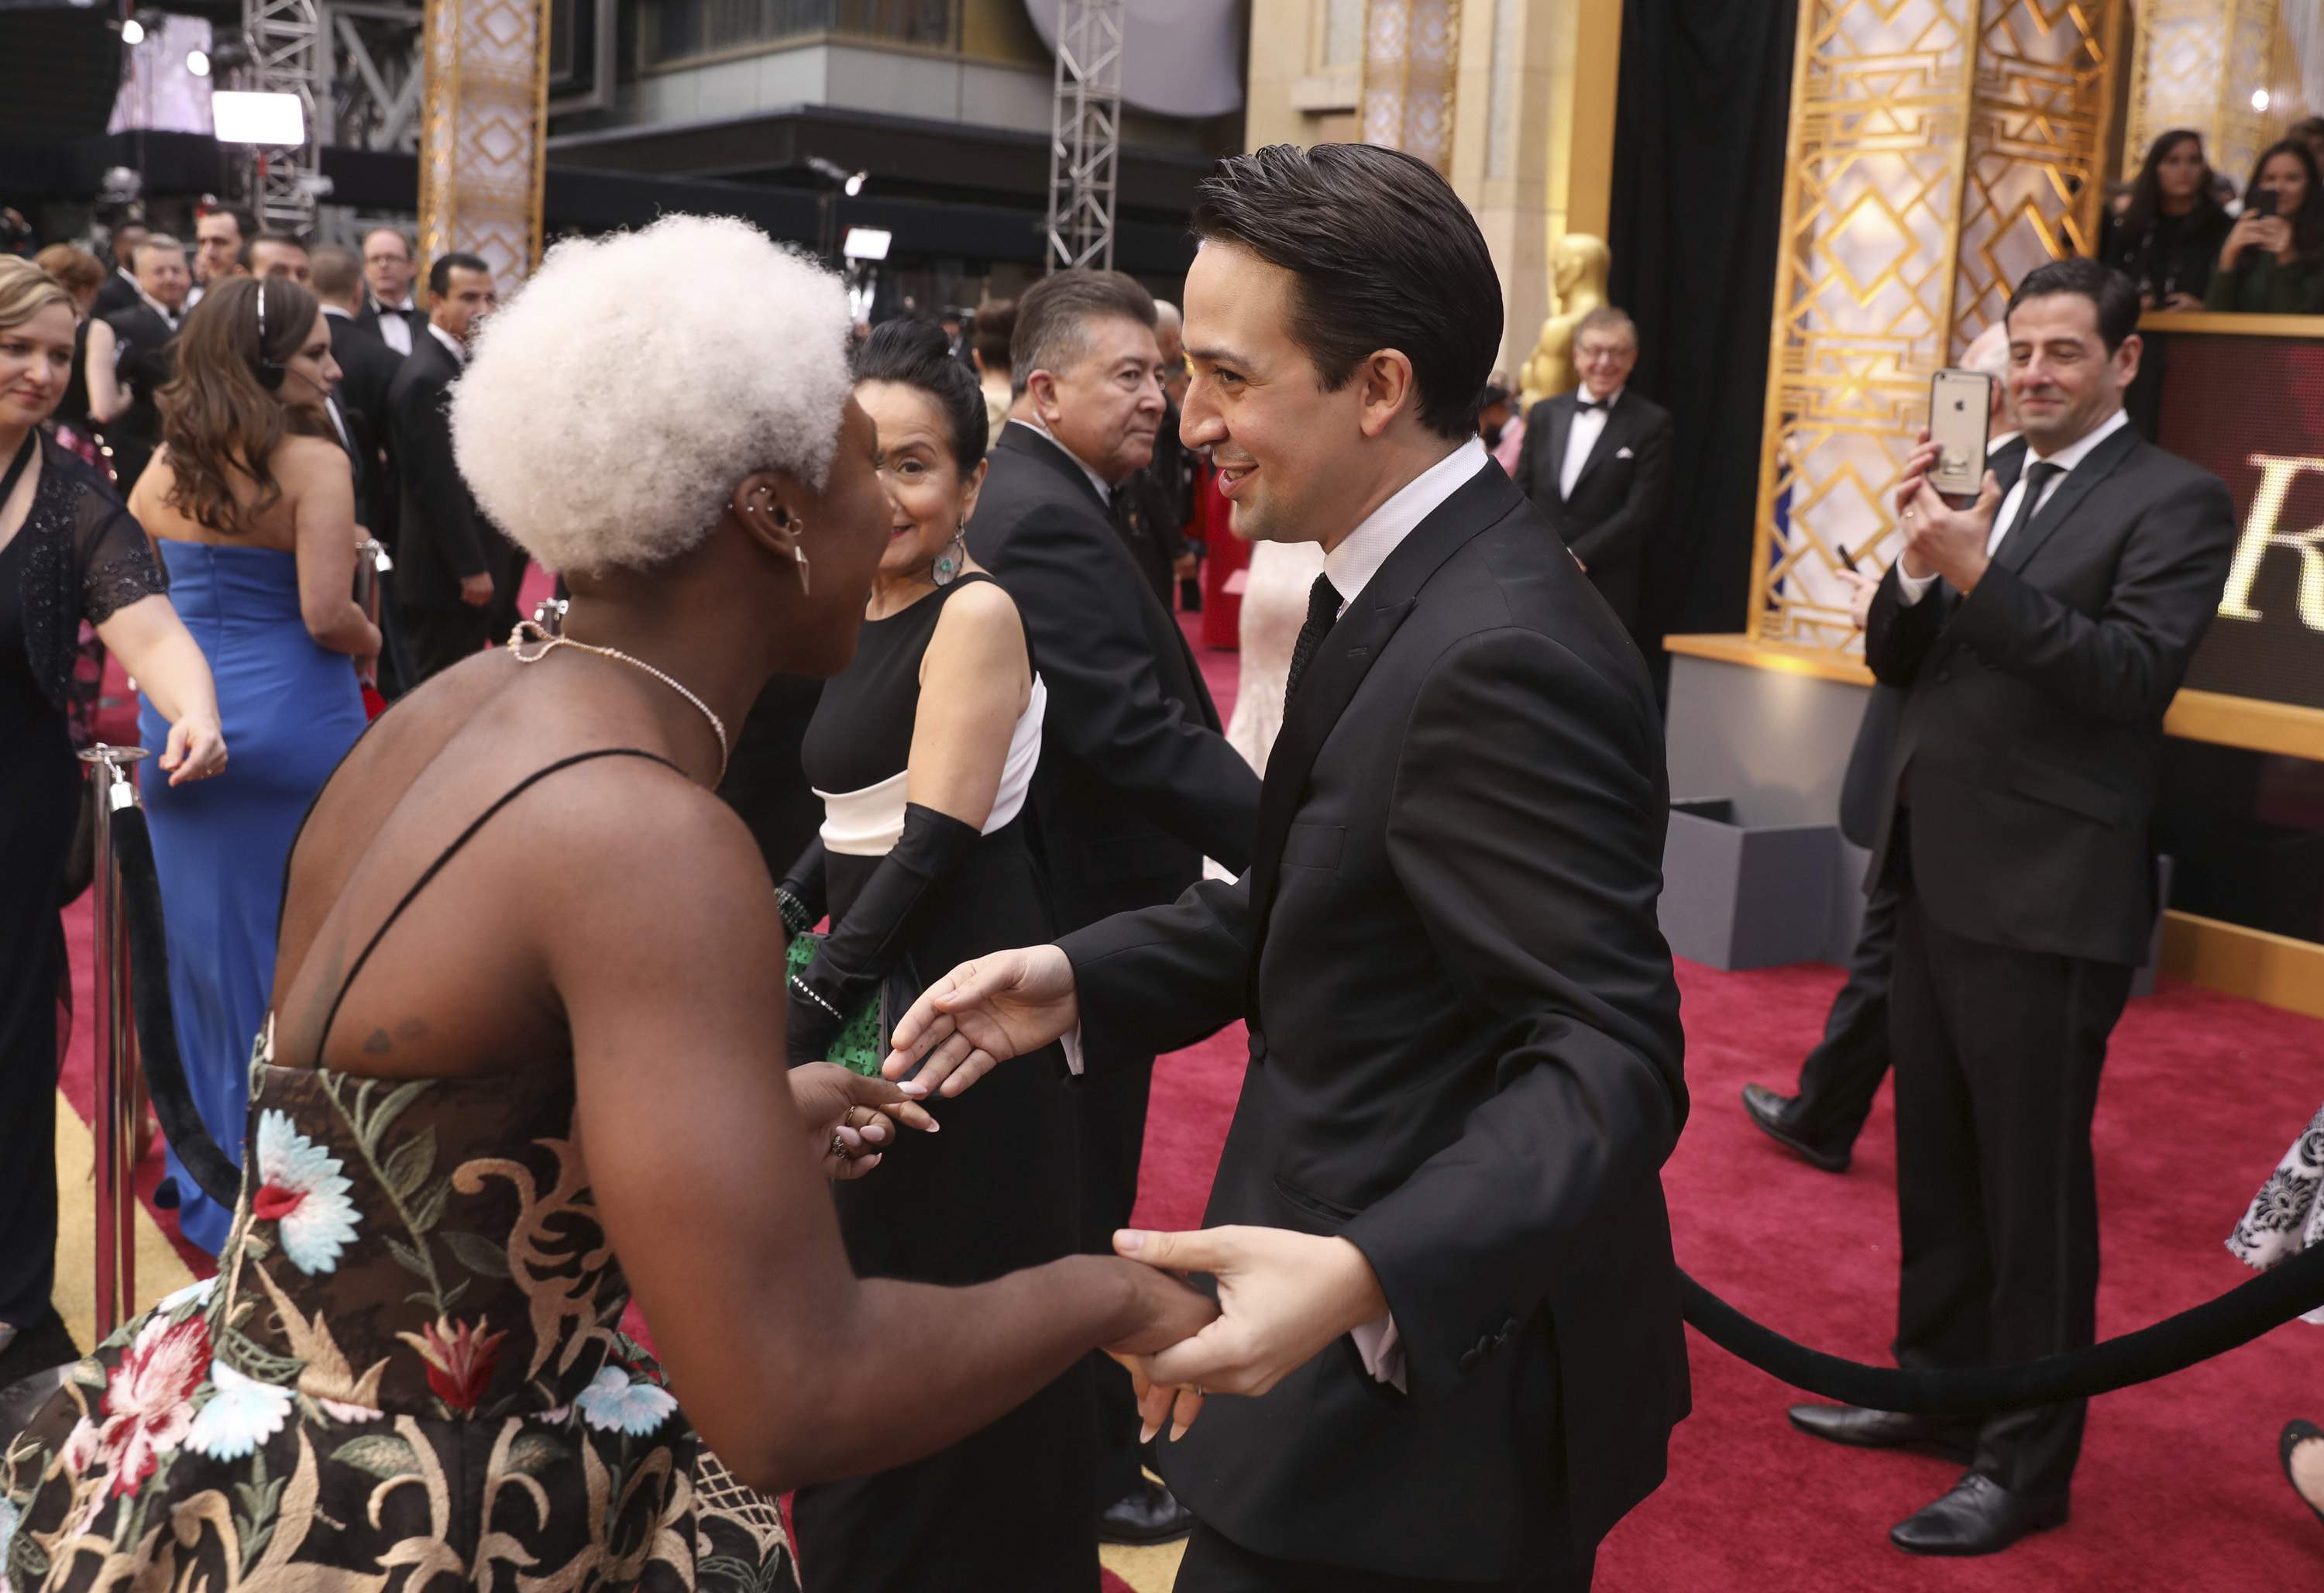 Cynthia Erivo, left, and Lin-Manuel Miranda arrive at the Oscars on Sunday, Feb. 26, 2017, at the Dolby Theatre in Los Angeles. THE ASSOCIATED PRESS